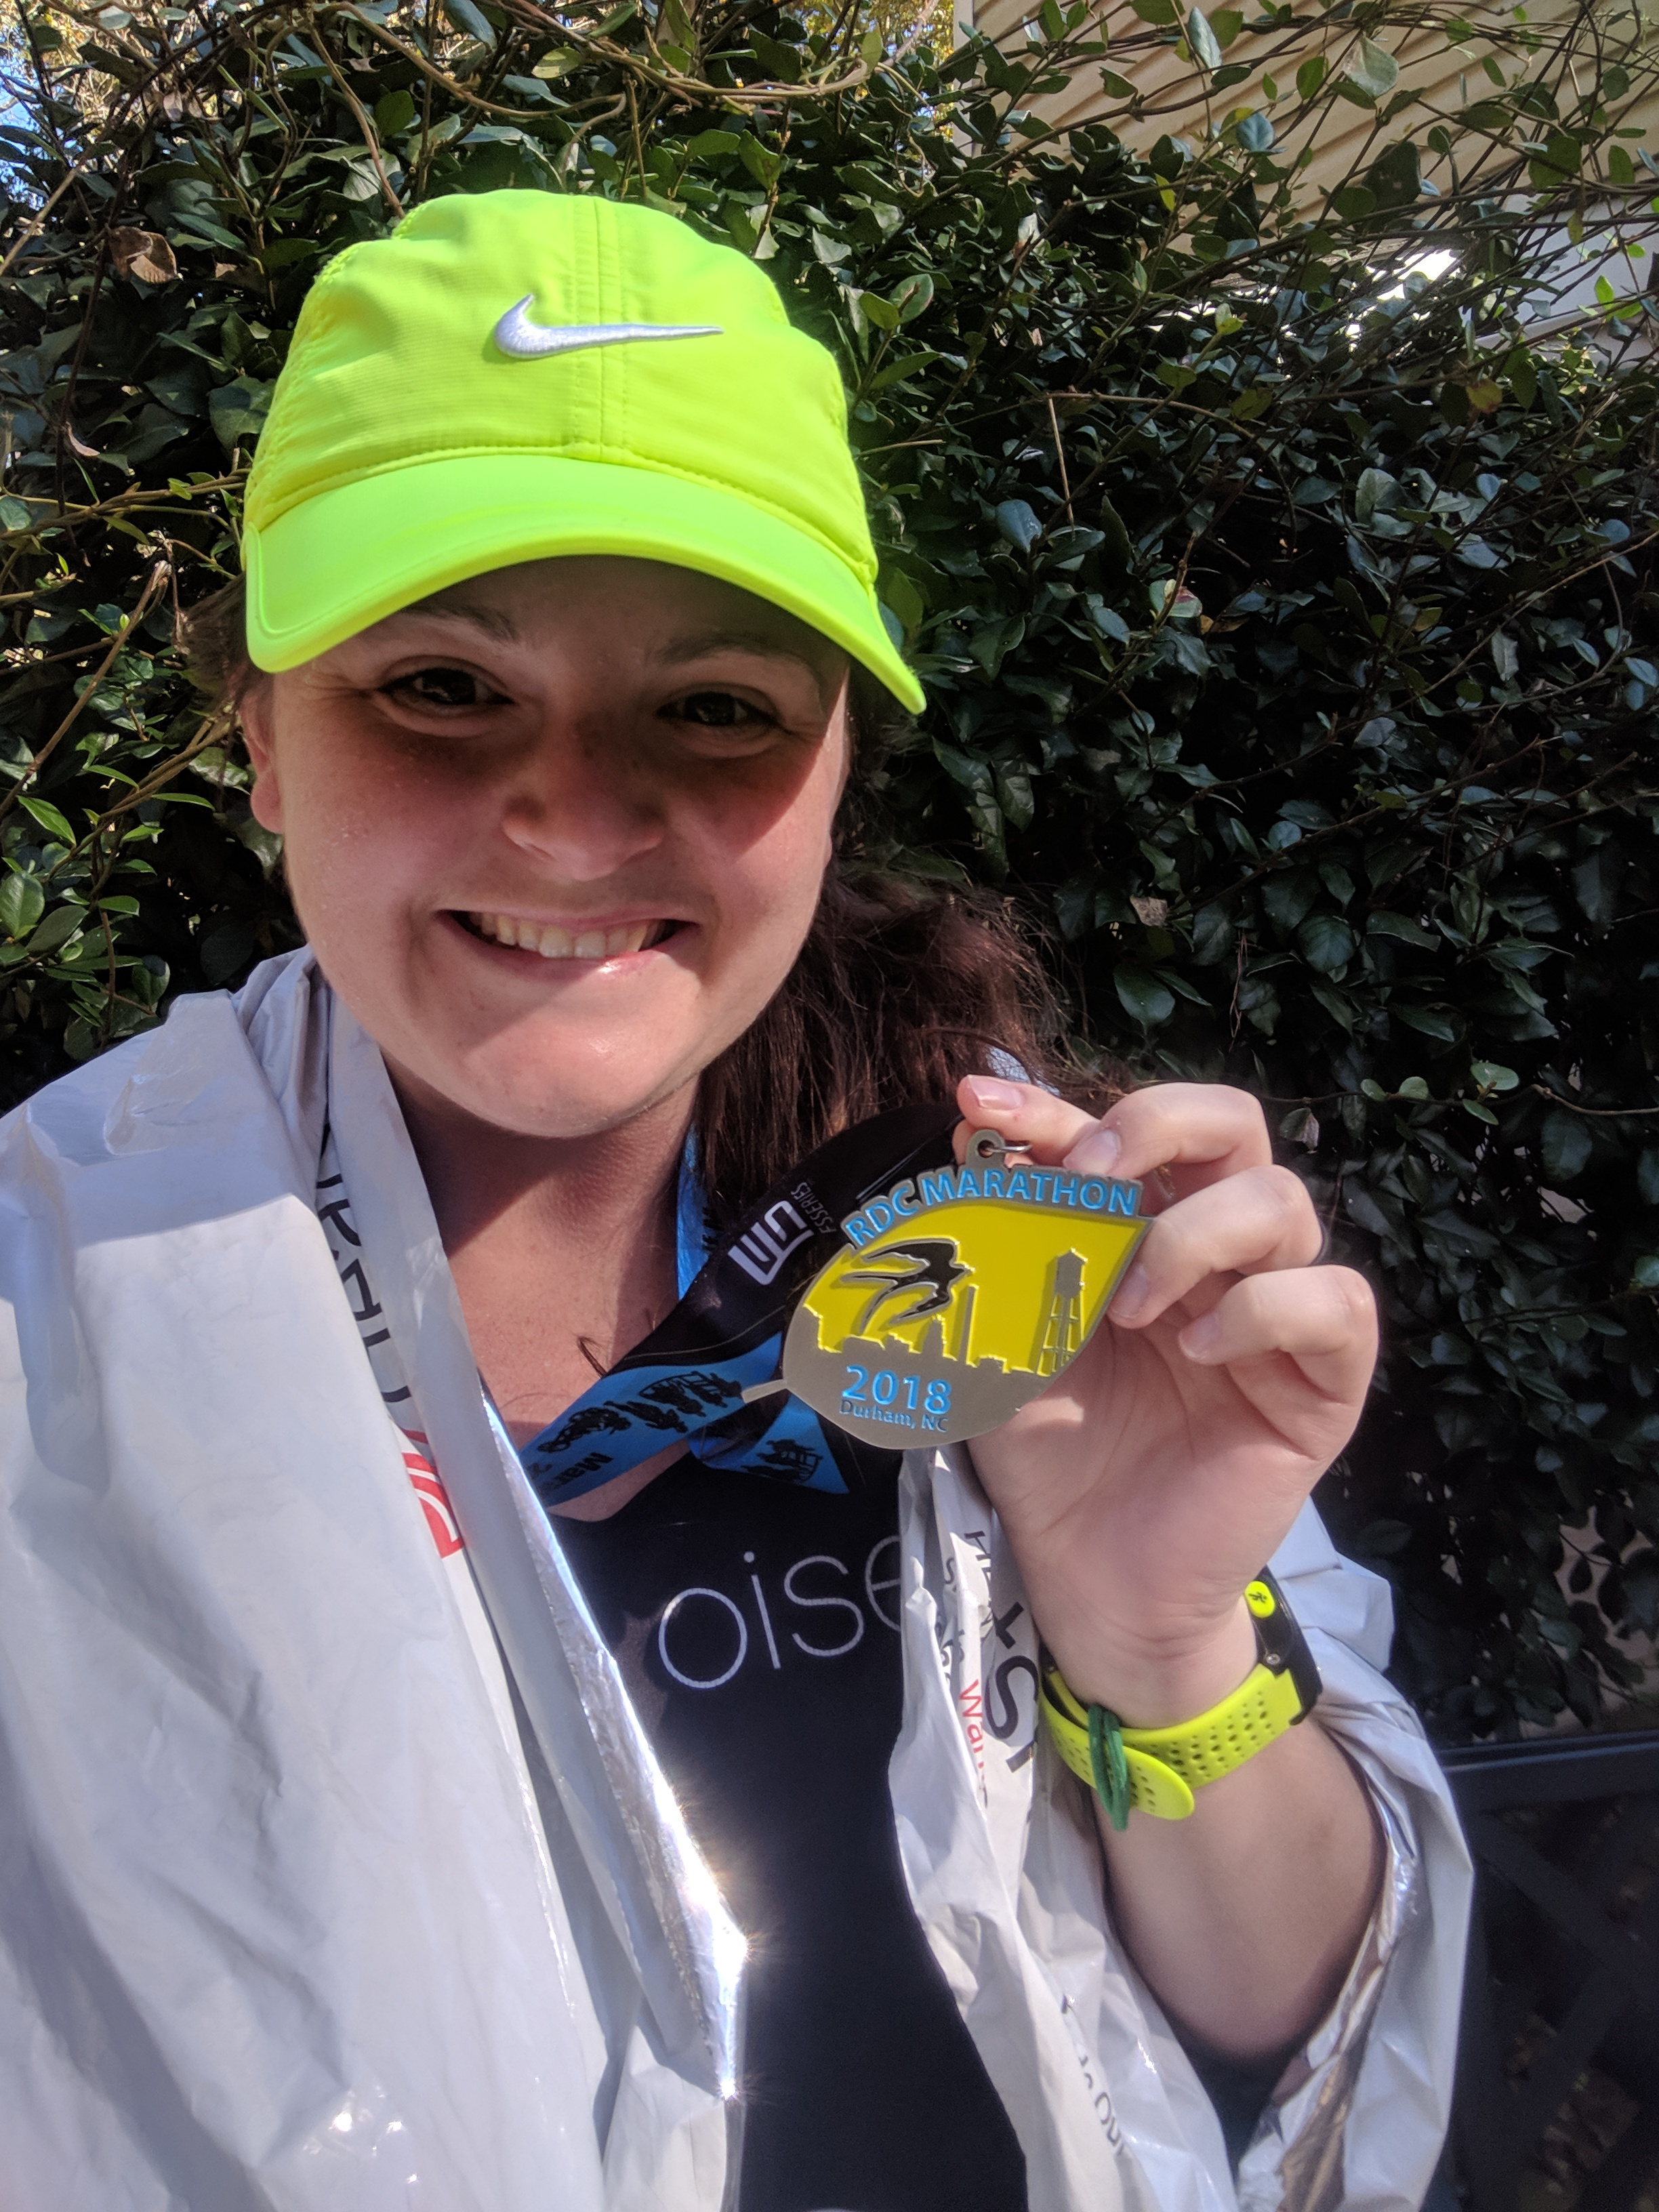 Post-race selfie! I went back to claim a space blanket and then snapped this last pick when I got home from the race. Yay!